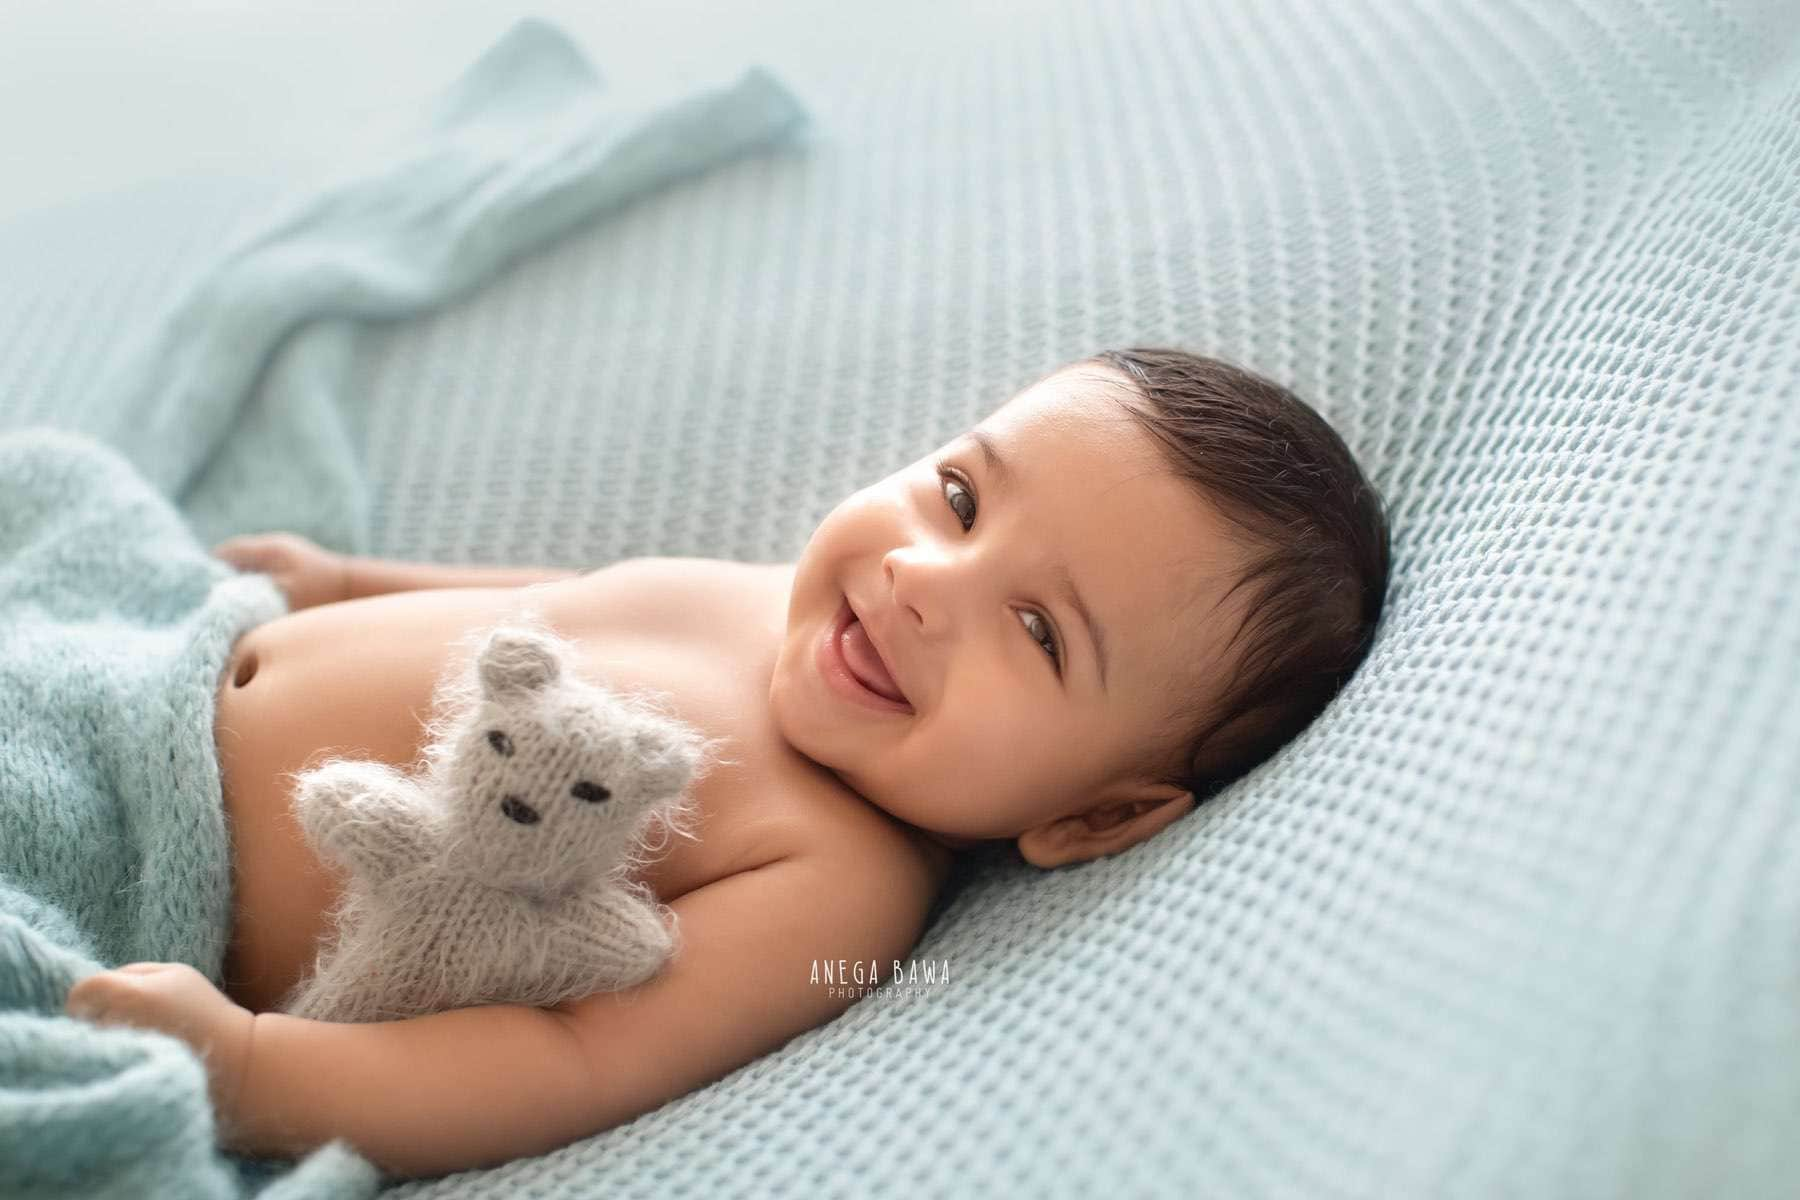 249903-blue-background-baby-photography-delhi-4-5-6-7-months-baby-photoshoot-gurgaon-anega-bawa